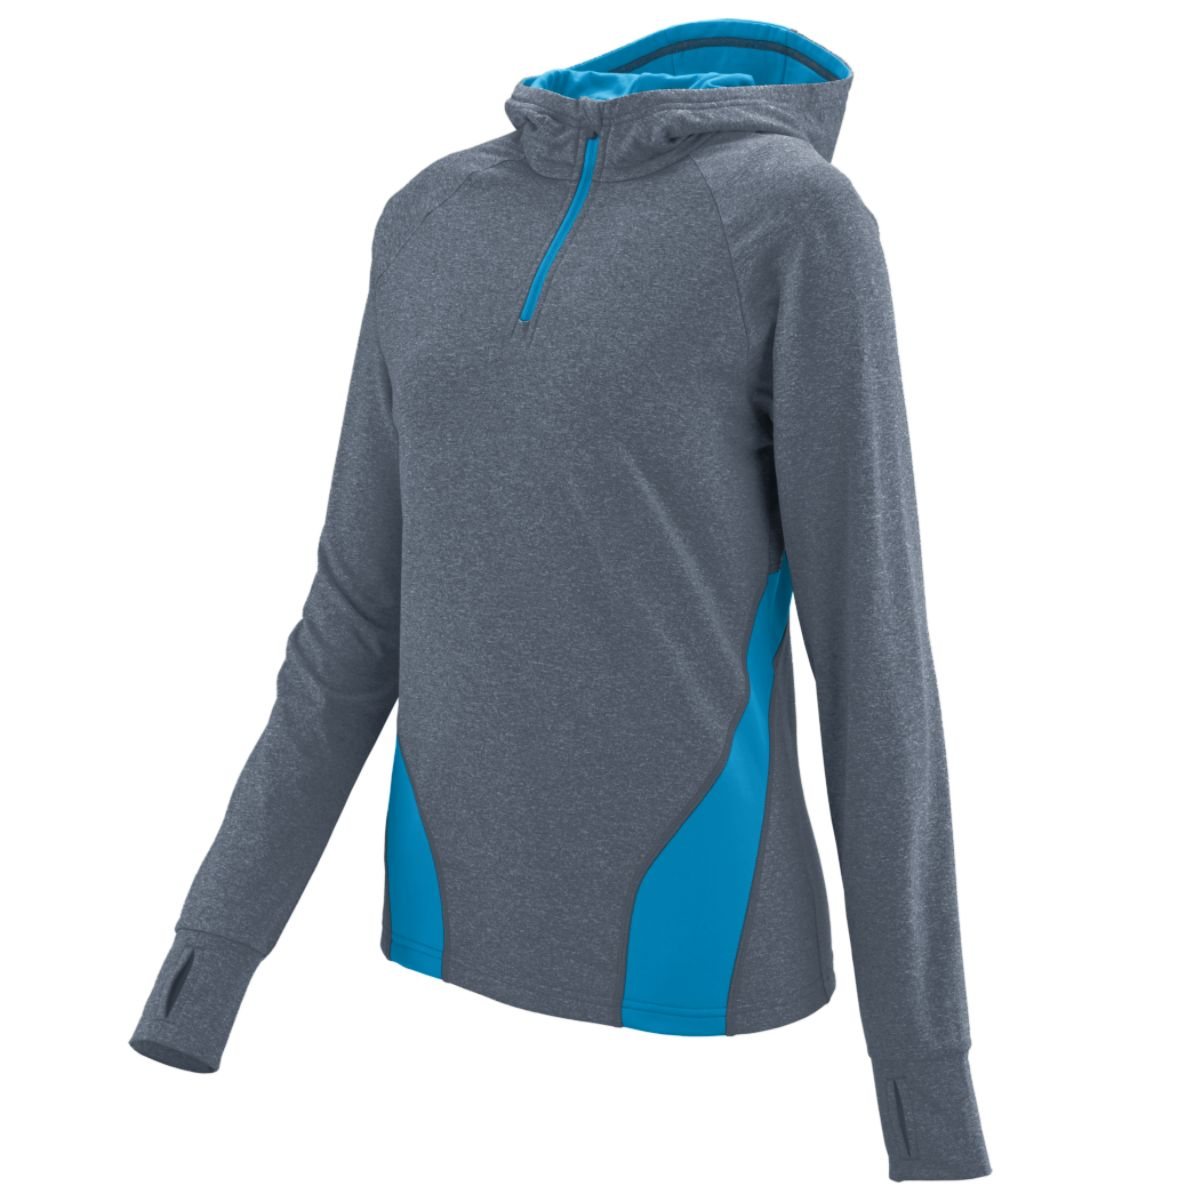 Augusta Ladies Freedom Pullover Gthth/Pb 2Xl - image 1 de 1